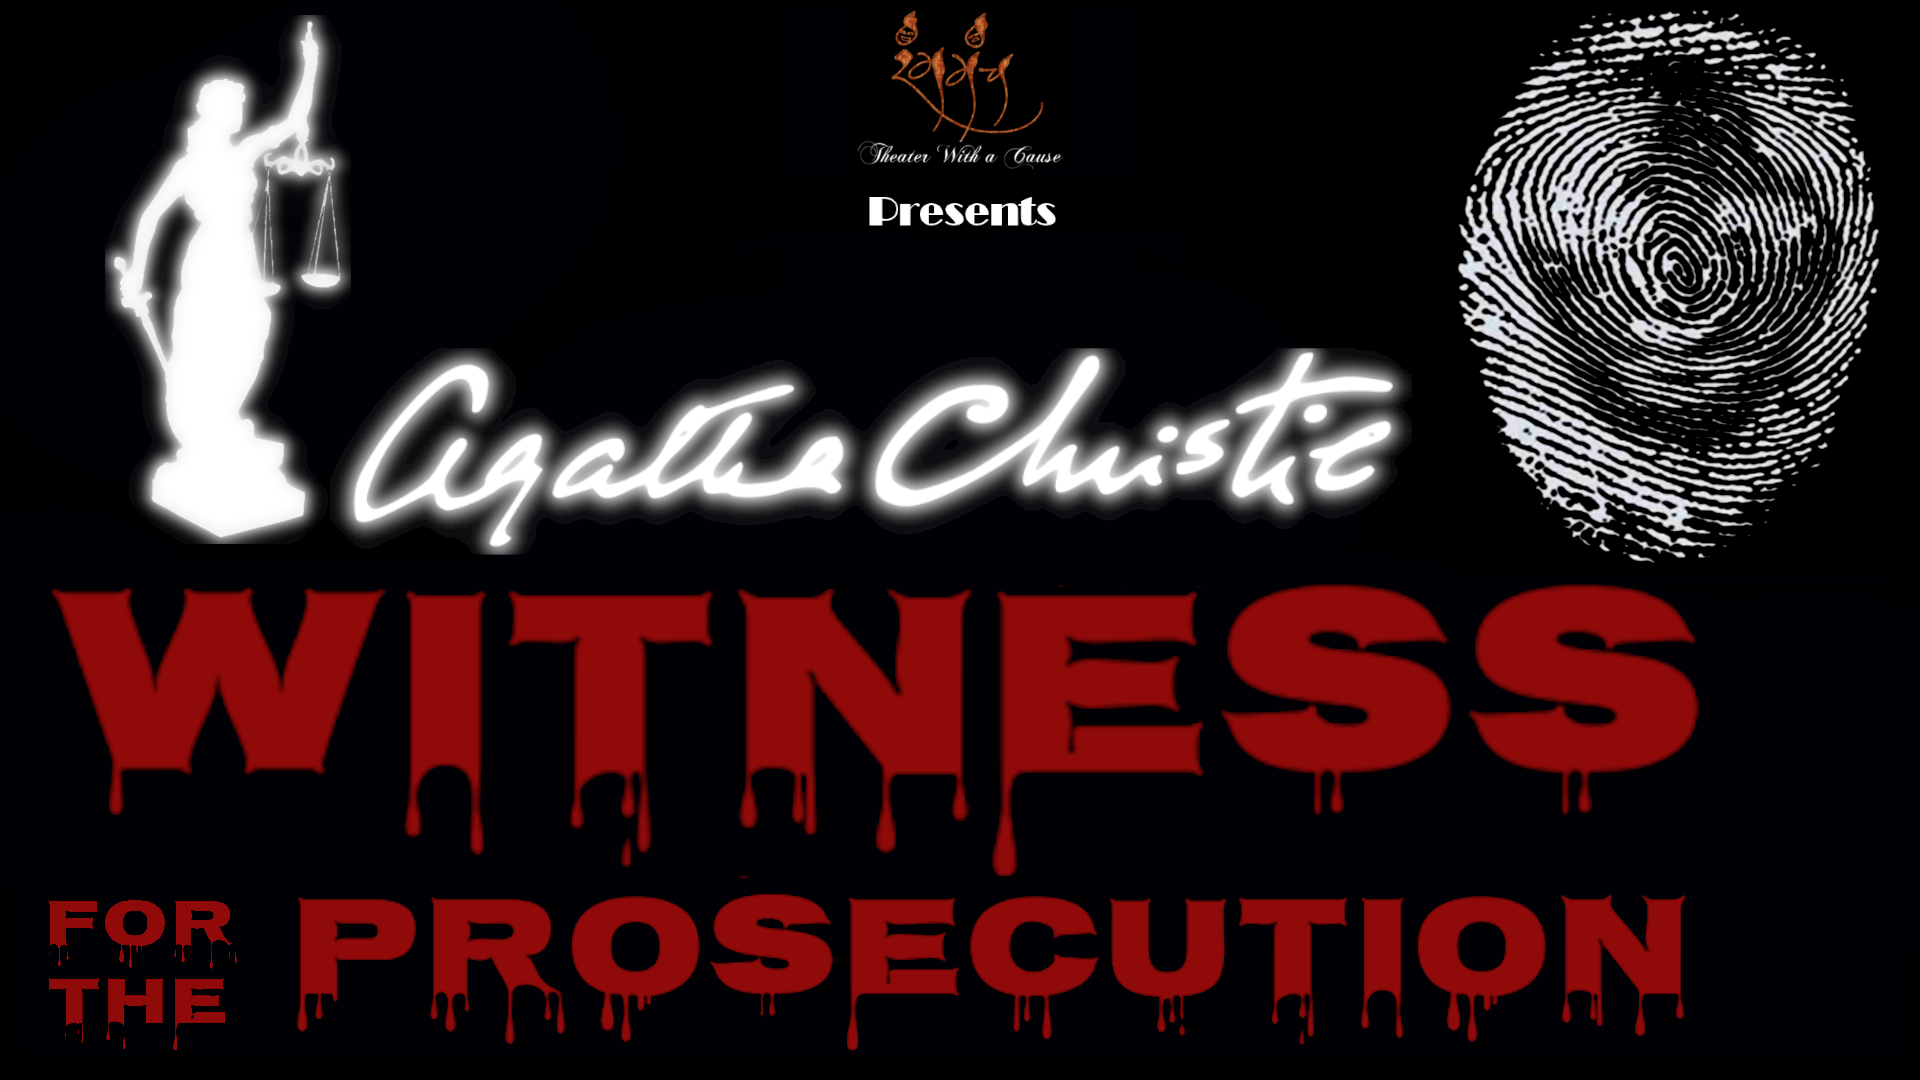 The Witness for prosecution